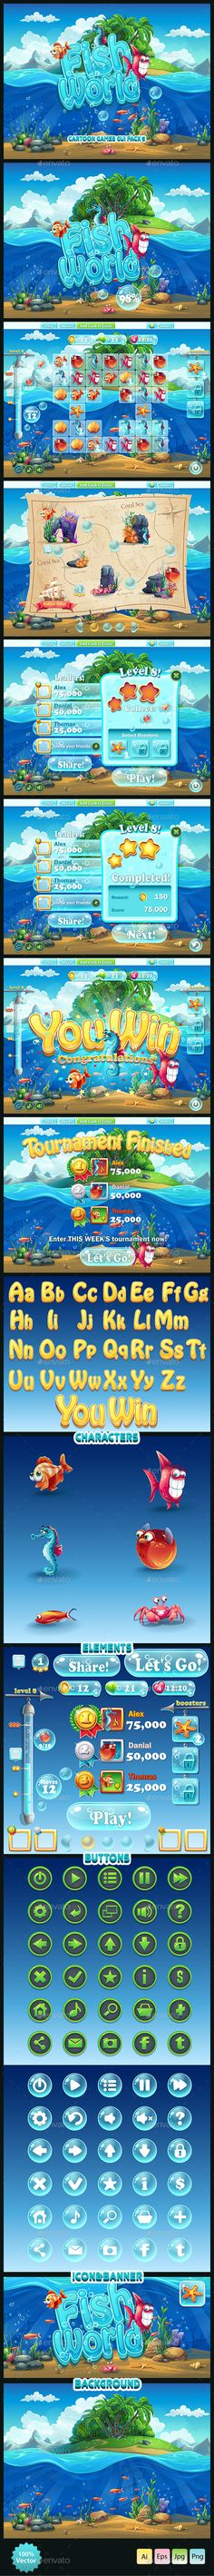 Fish world - GUI pack 9 - User Interfaces #Game #Assets   Download http://graphicriver.net/item/fish-world-gui-pack-9/13272177?ref=sinzo